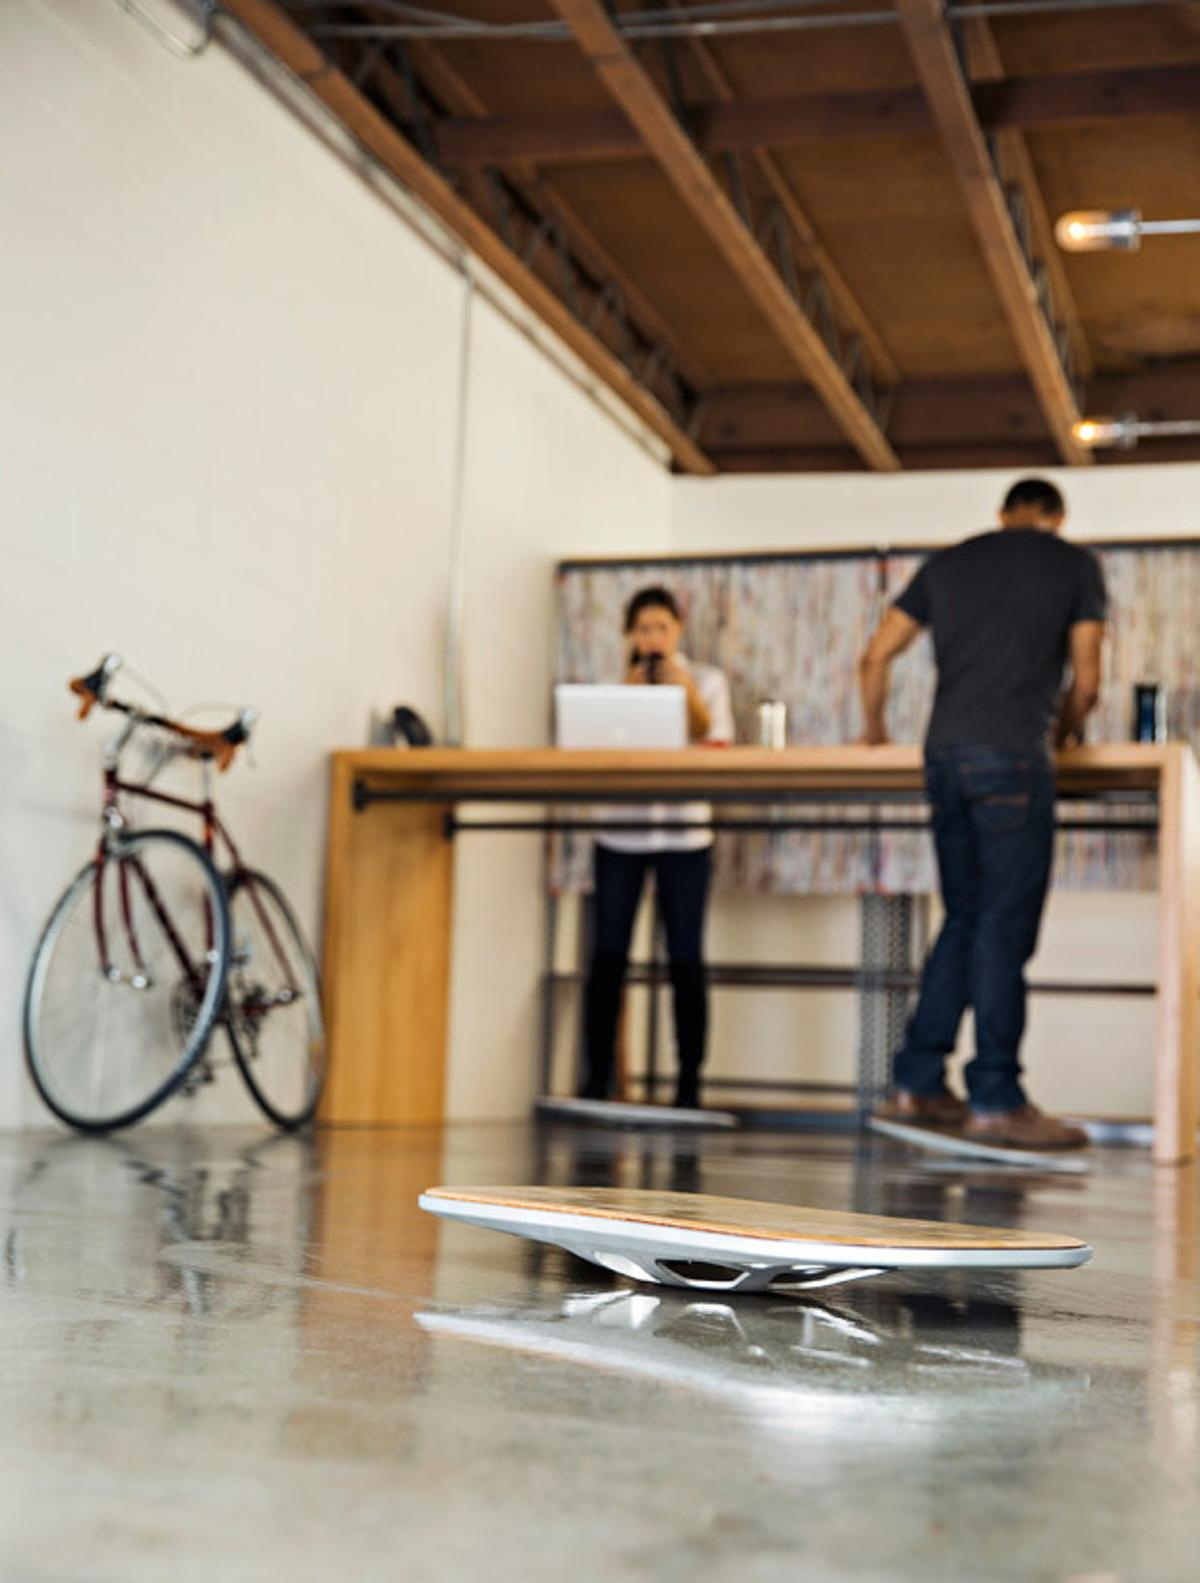 Standing on the Level board is claimed to require a similar amount of leg motion to walking for those working at a standing desk